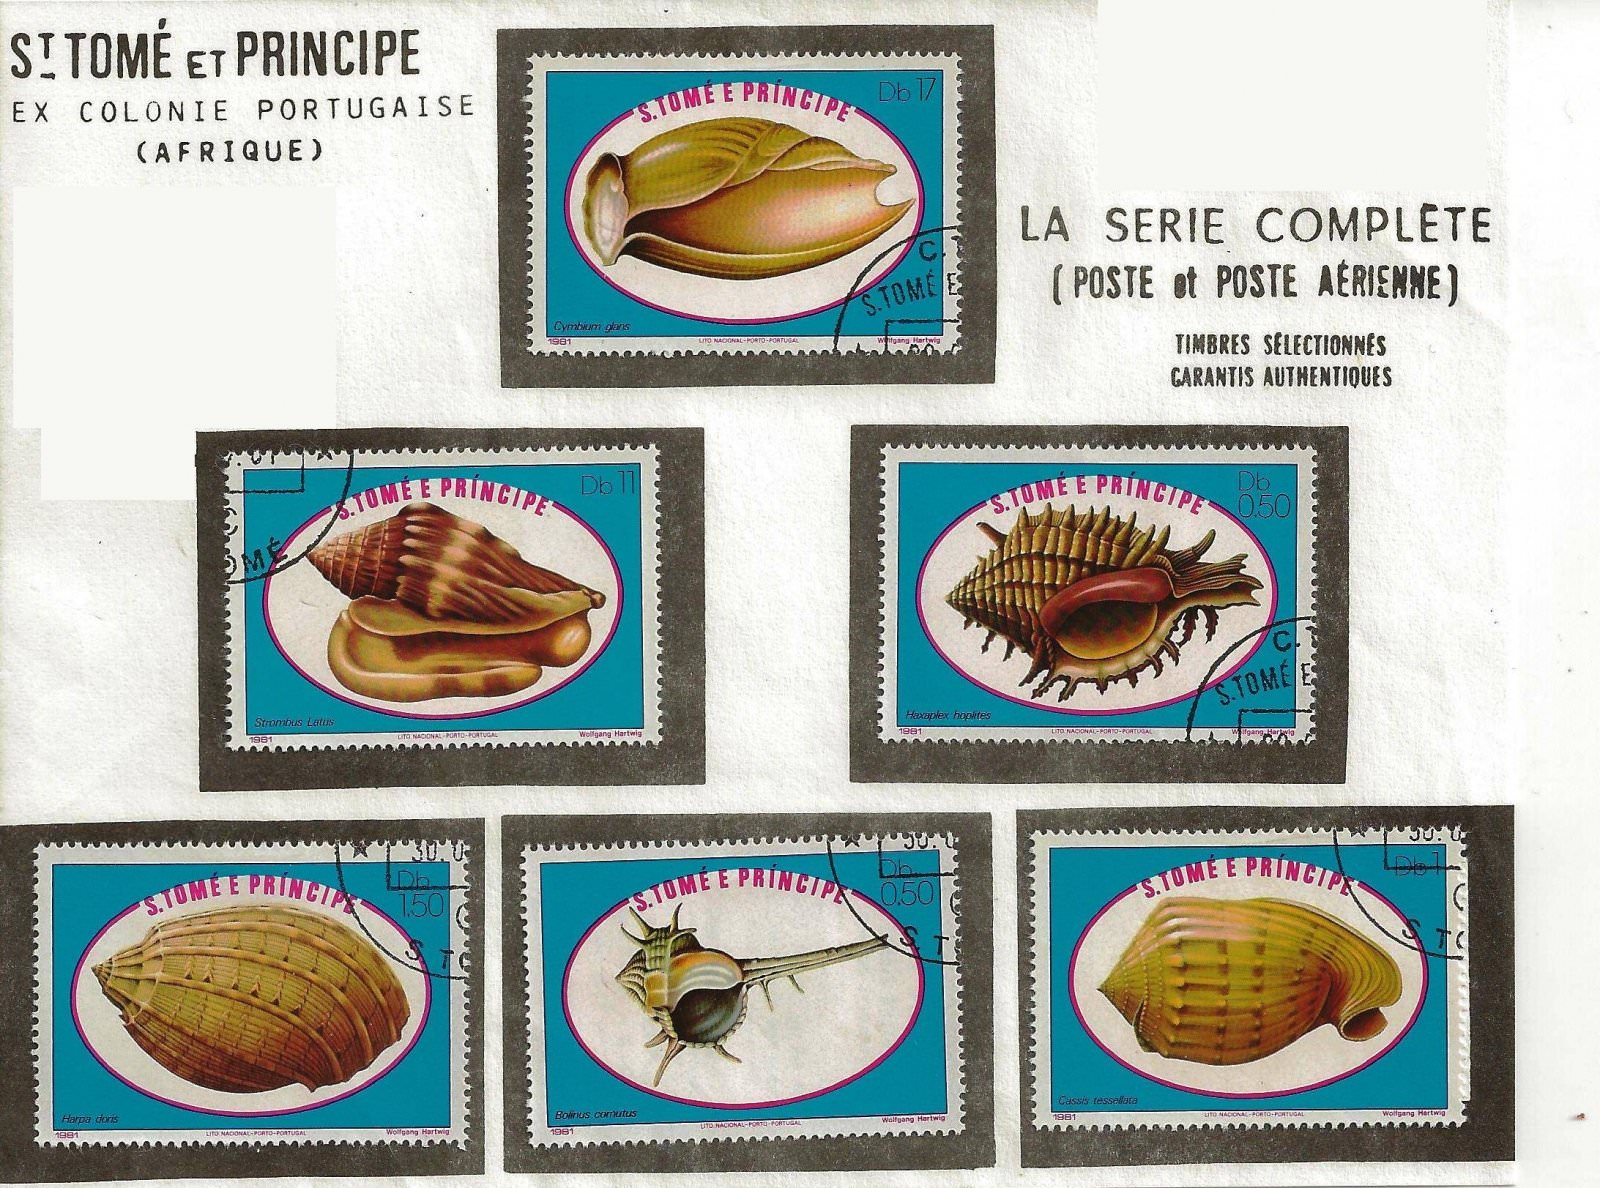 coquillages sao tome